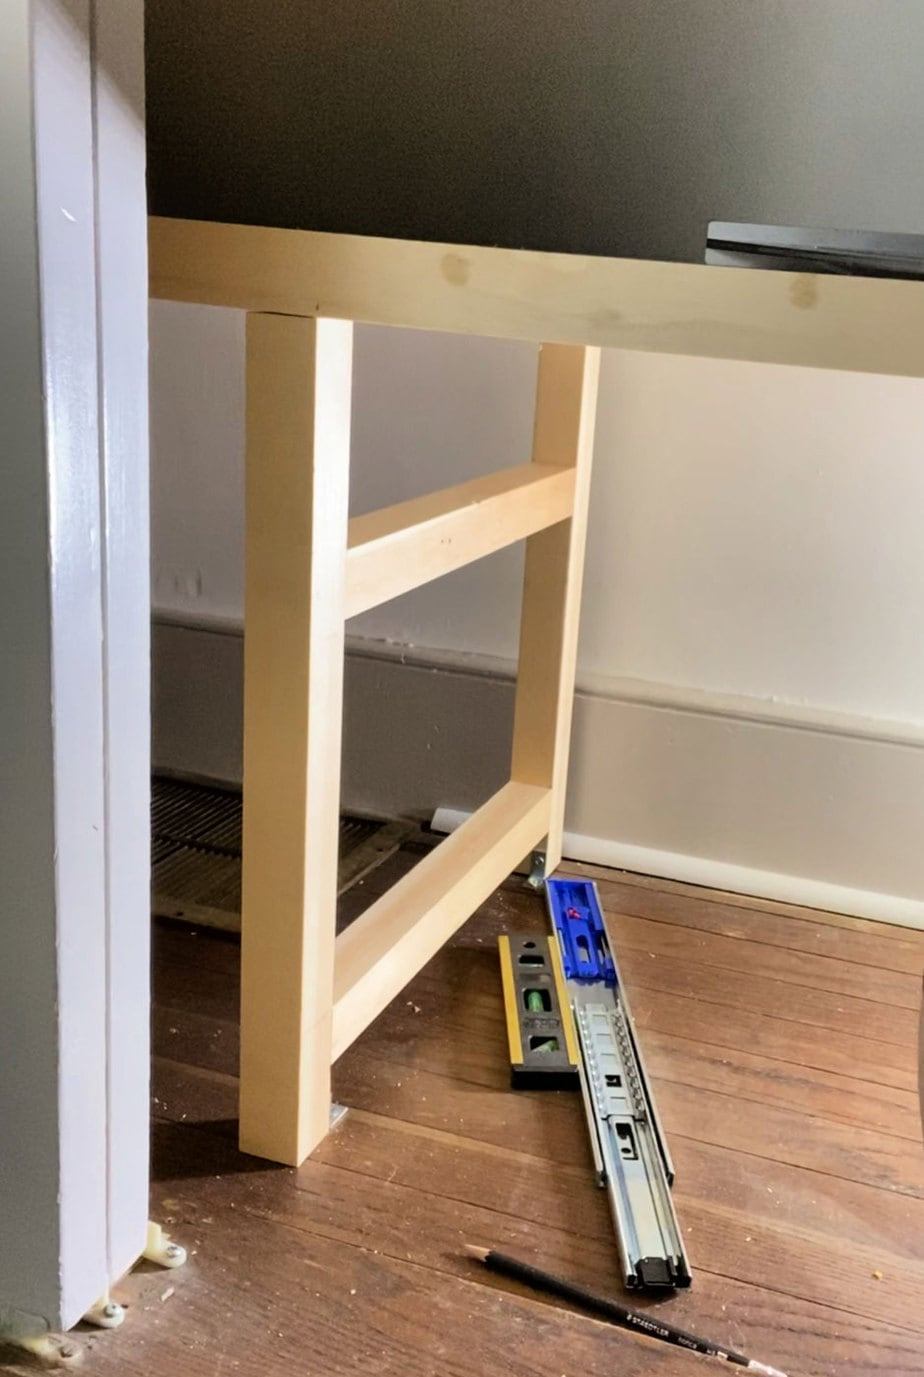 center bench support inside closet